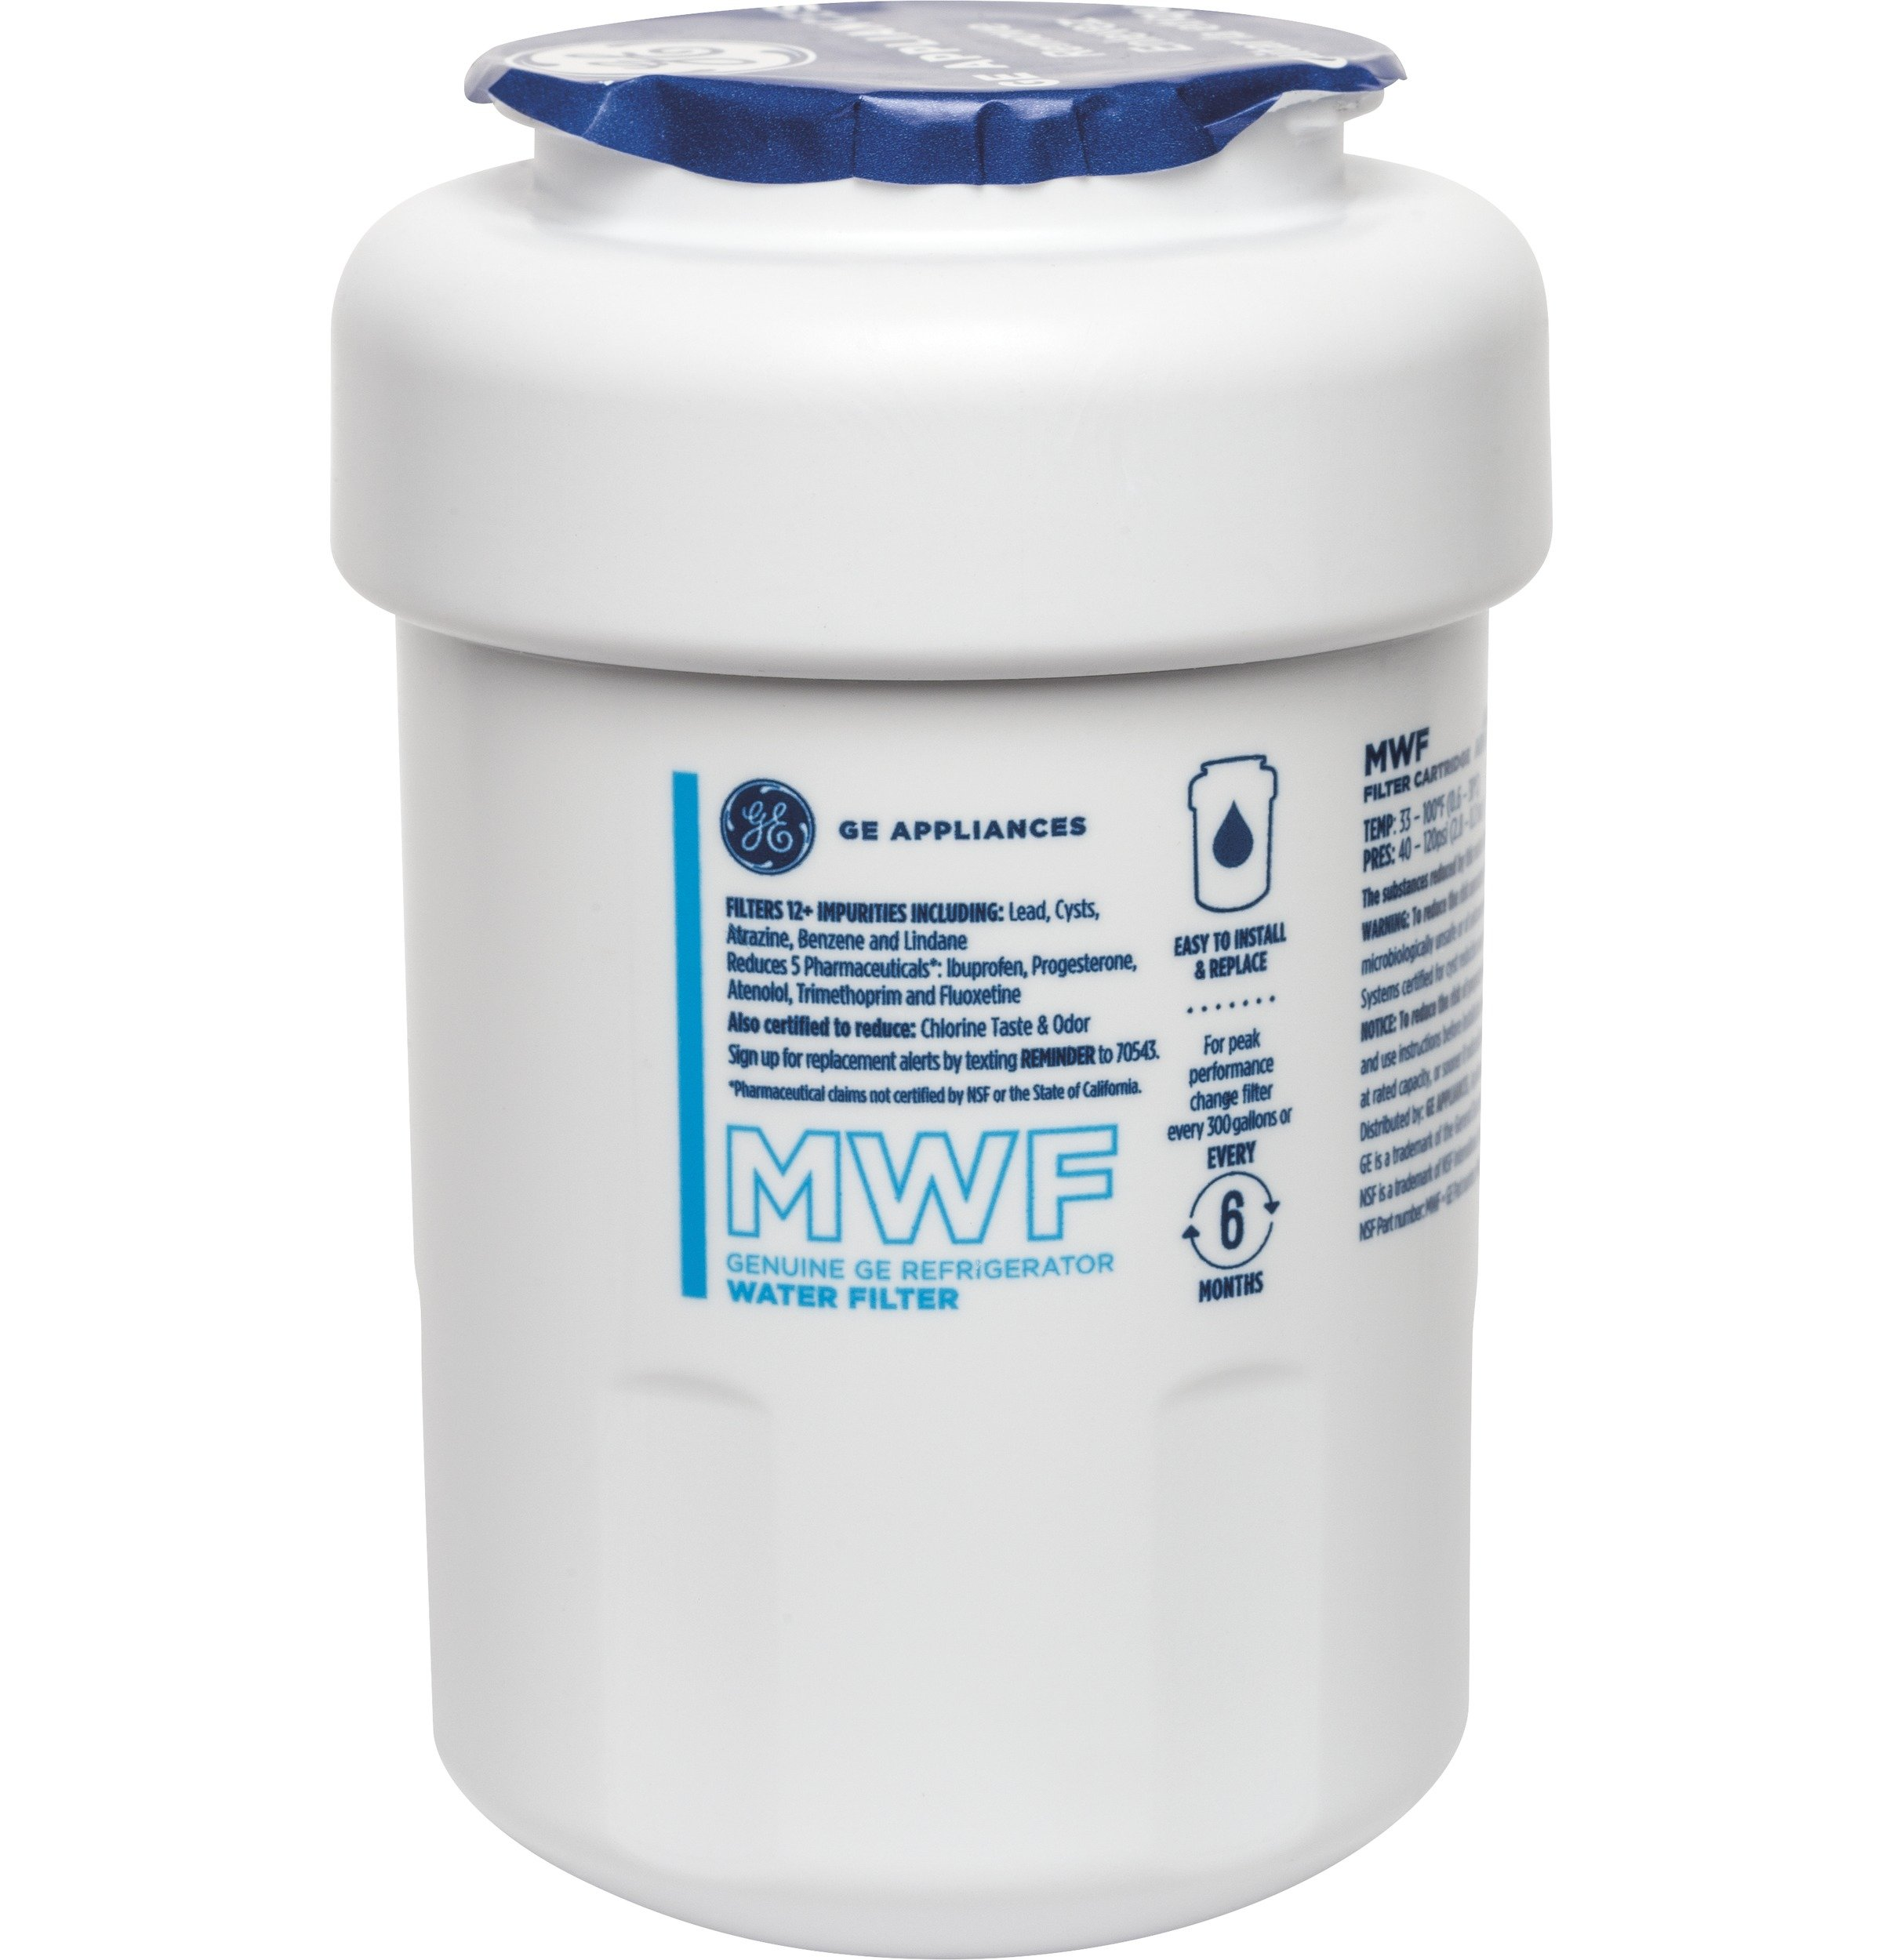 General Electric MWF Refrigerator Water Filter by GE